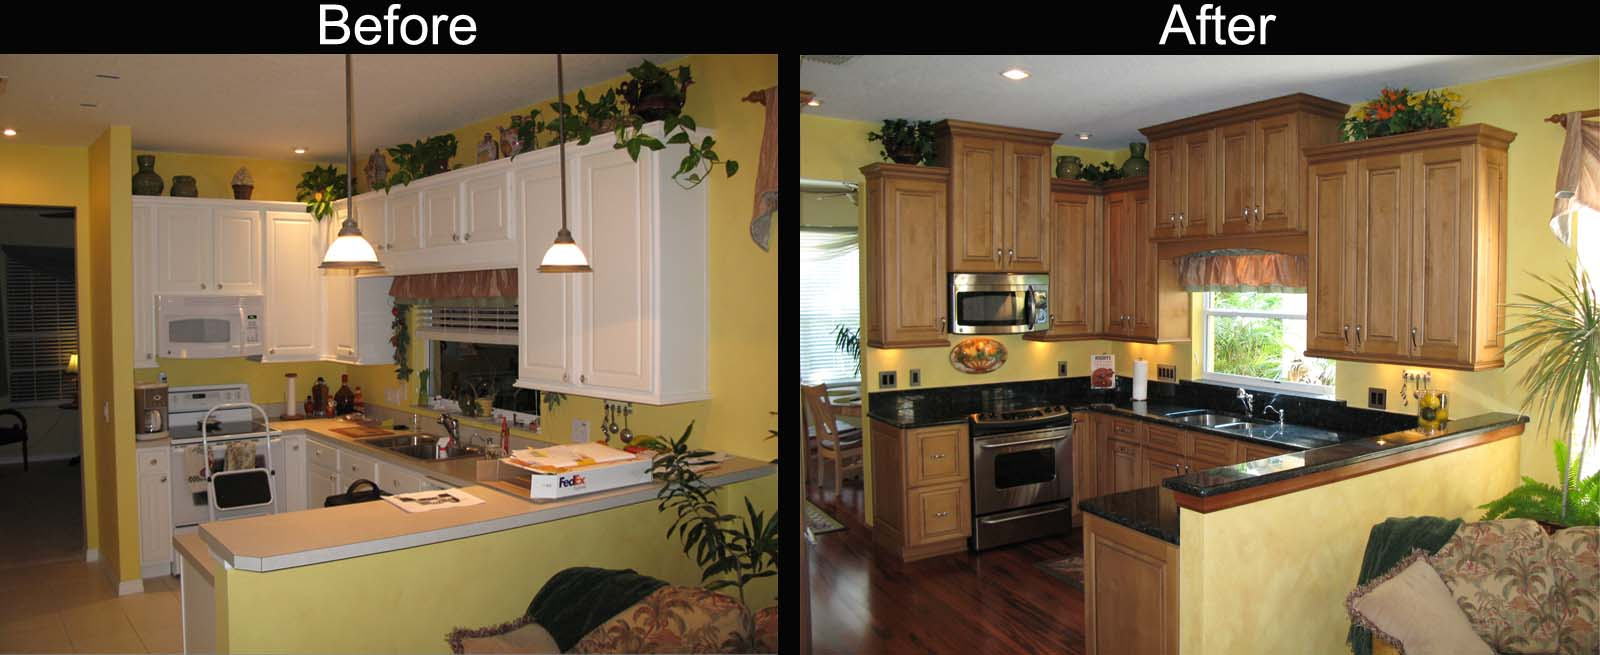 Superbealing Kitchen Renovation Before And After Of S Renovations Acnn Decor